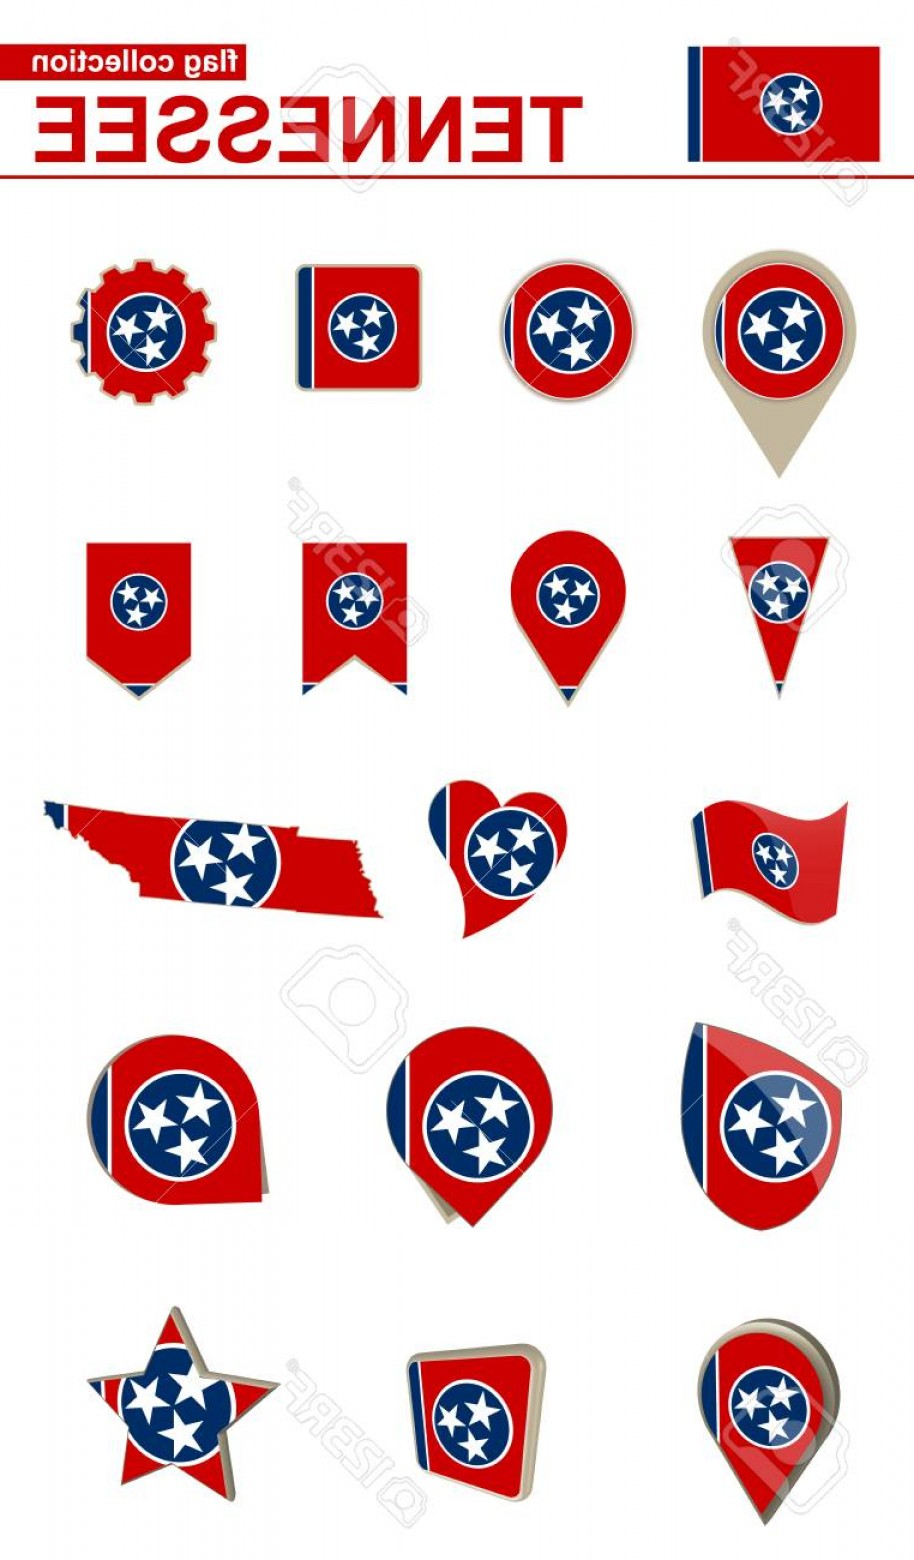 Tennessee Flag Vector: Photostock Vector Tennessee Flag Collection Big Set For Design Vector Illustration